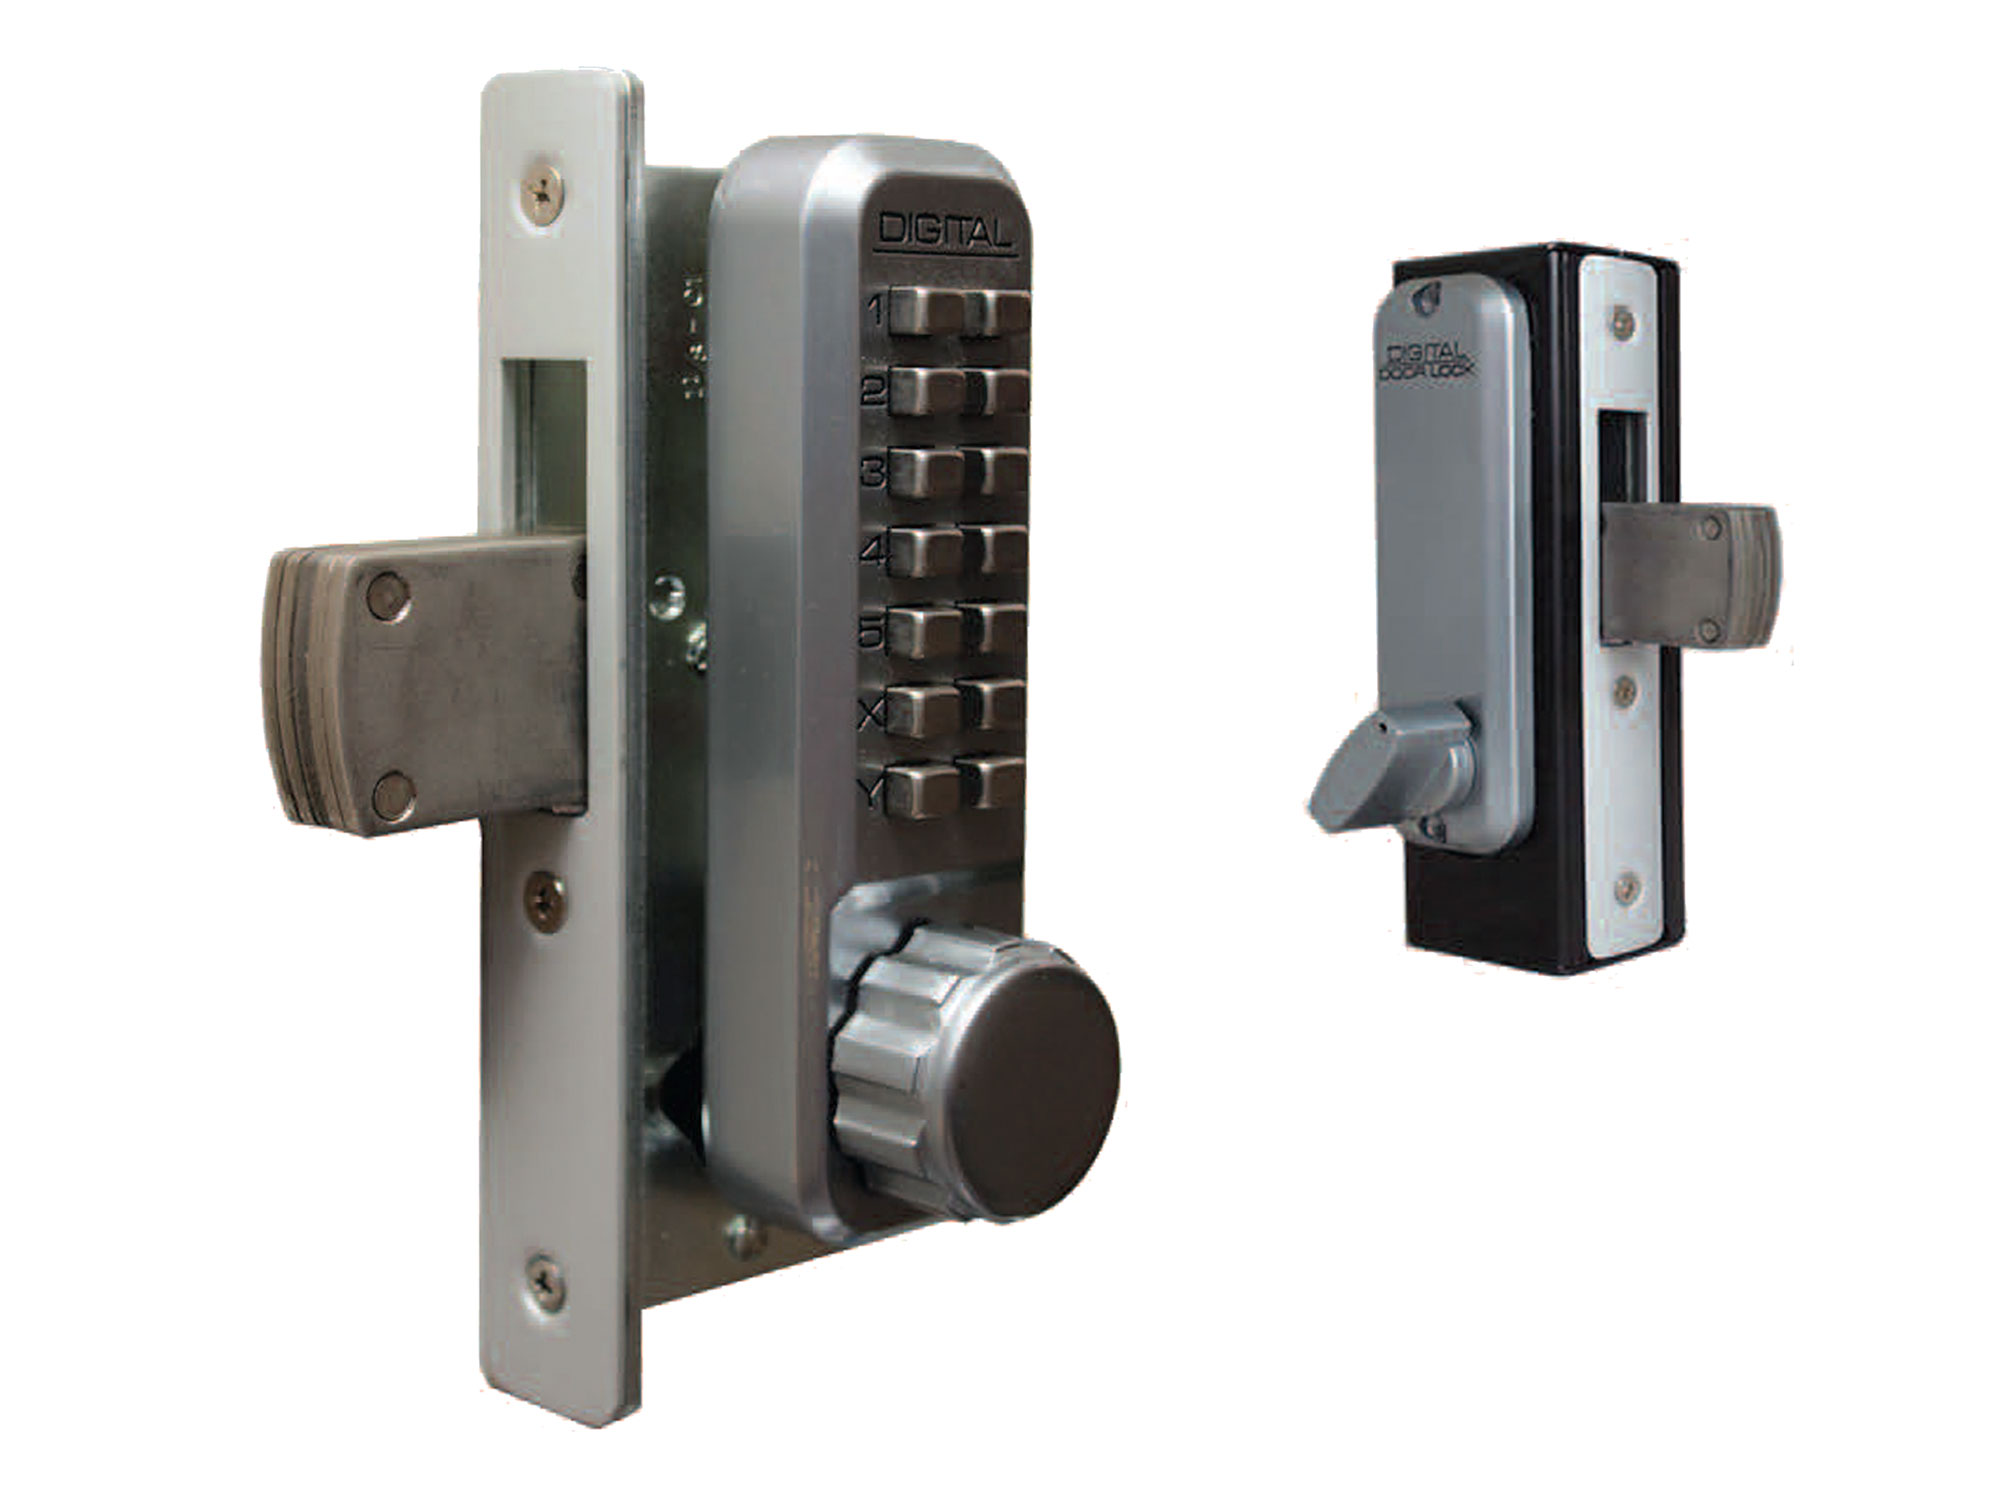 Lockey 2900 Narrow-Stile Knob-Handle Keypad Deadbolt  Lock